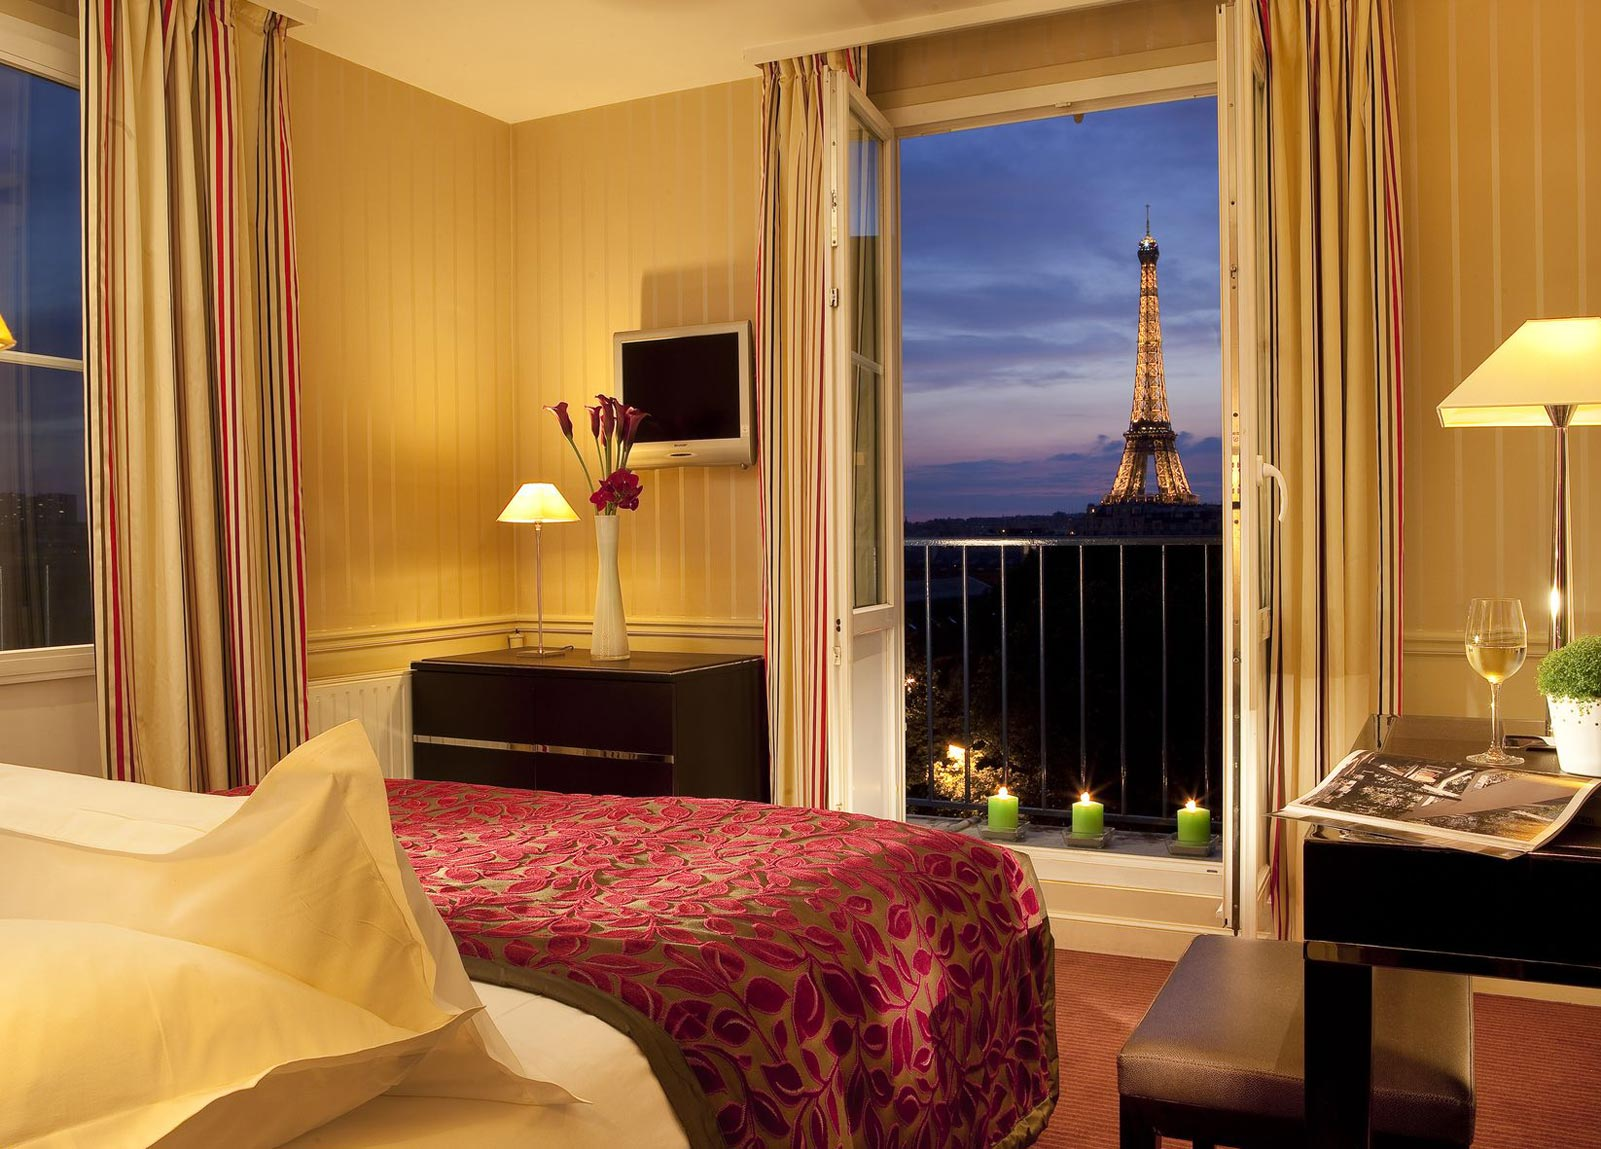 Cheap hotels paris near eiffel tower